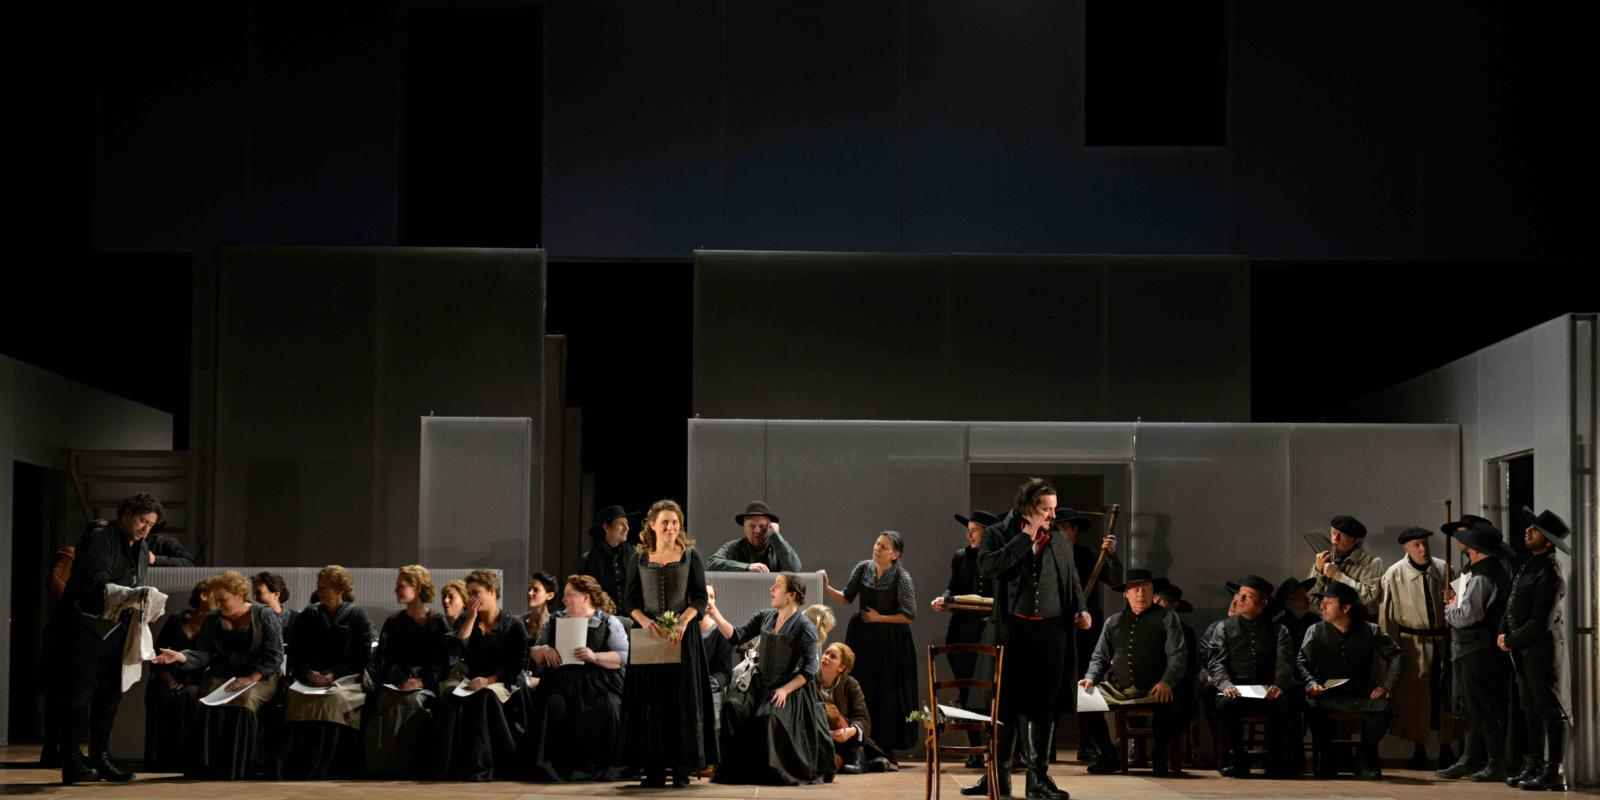 An image of the cast of Fiona Shaw's 2014 production of The Marriage of Figaro